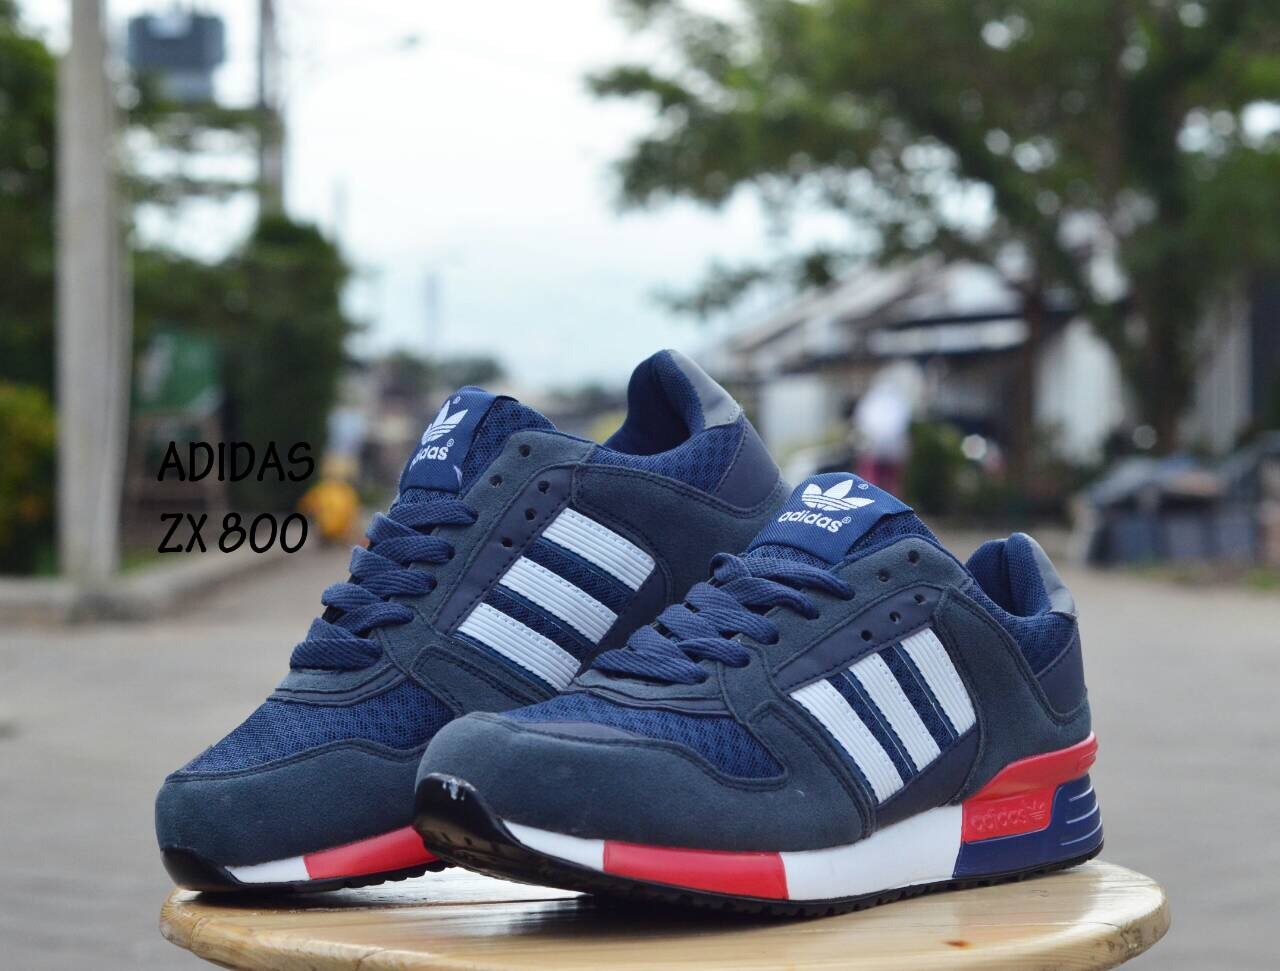 5fc33548a ... where to buy harga adidas zx flux original adidas zx 800 wanita sepatu  gym wanita sepatu